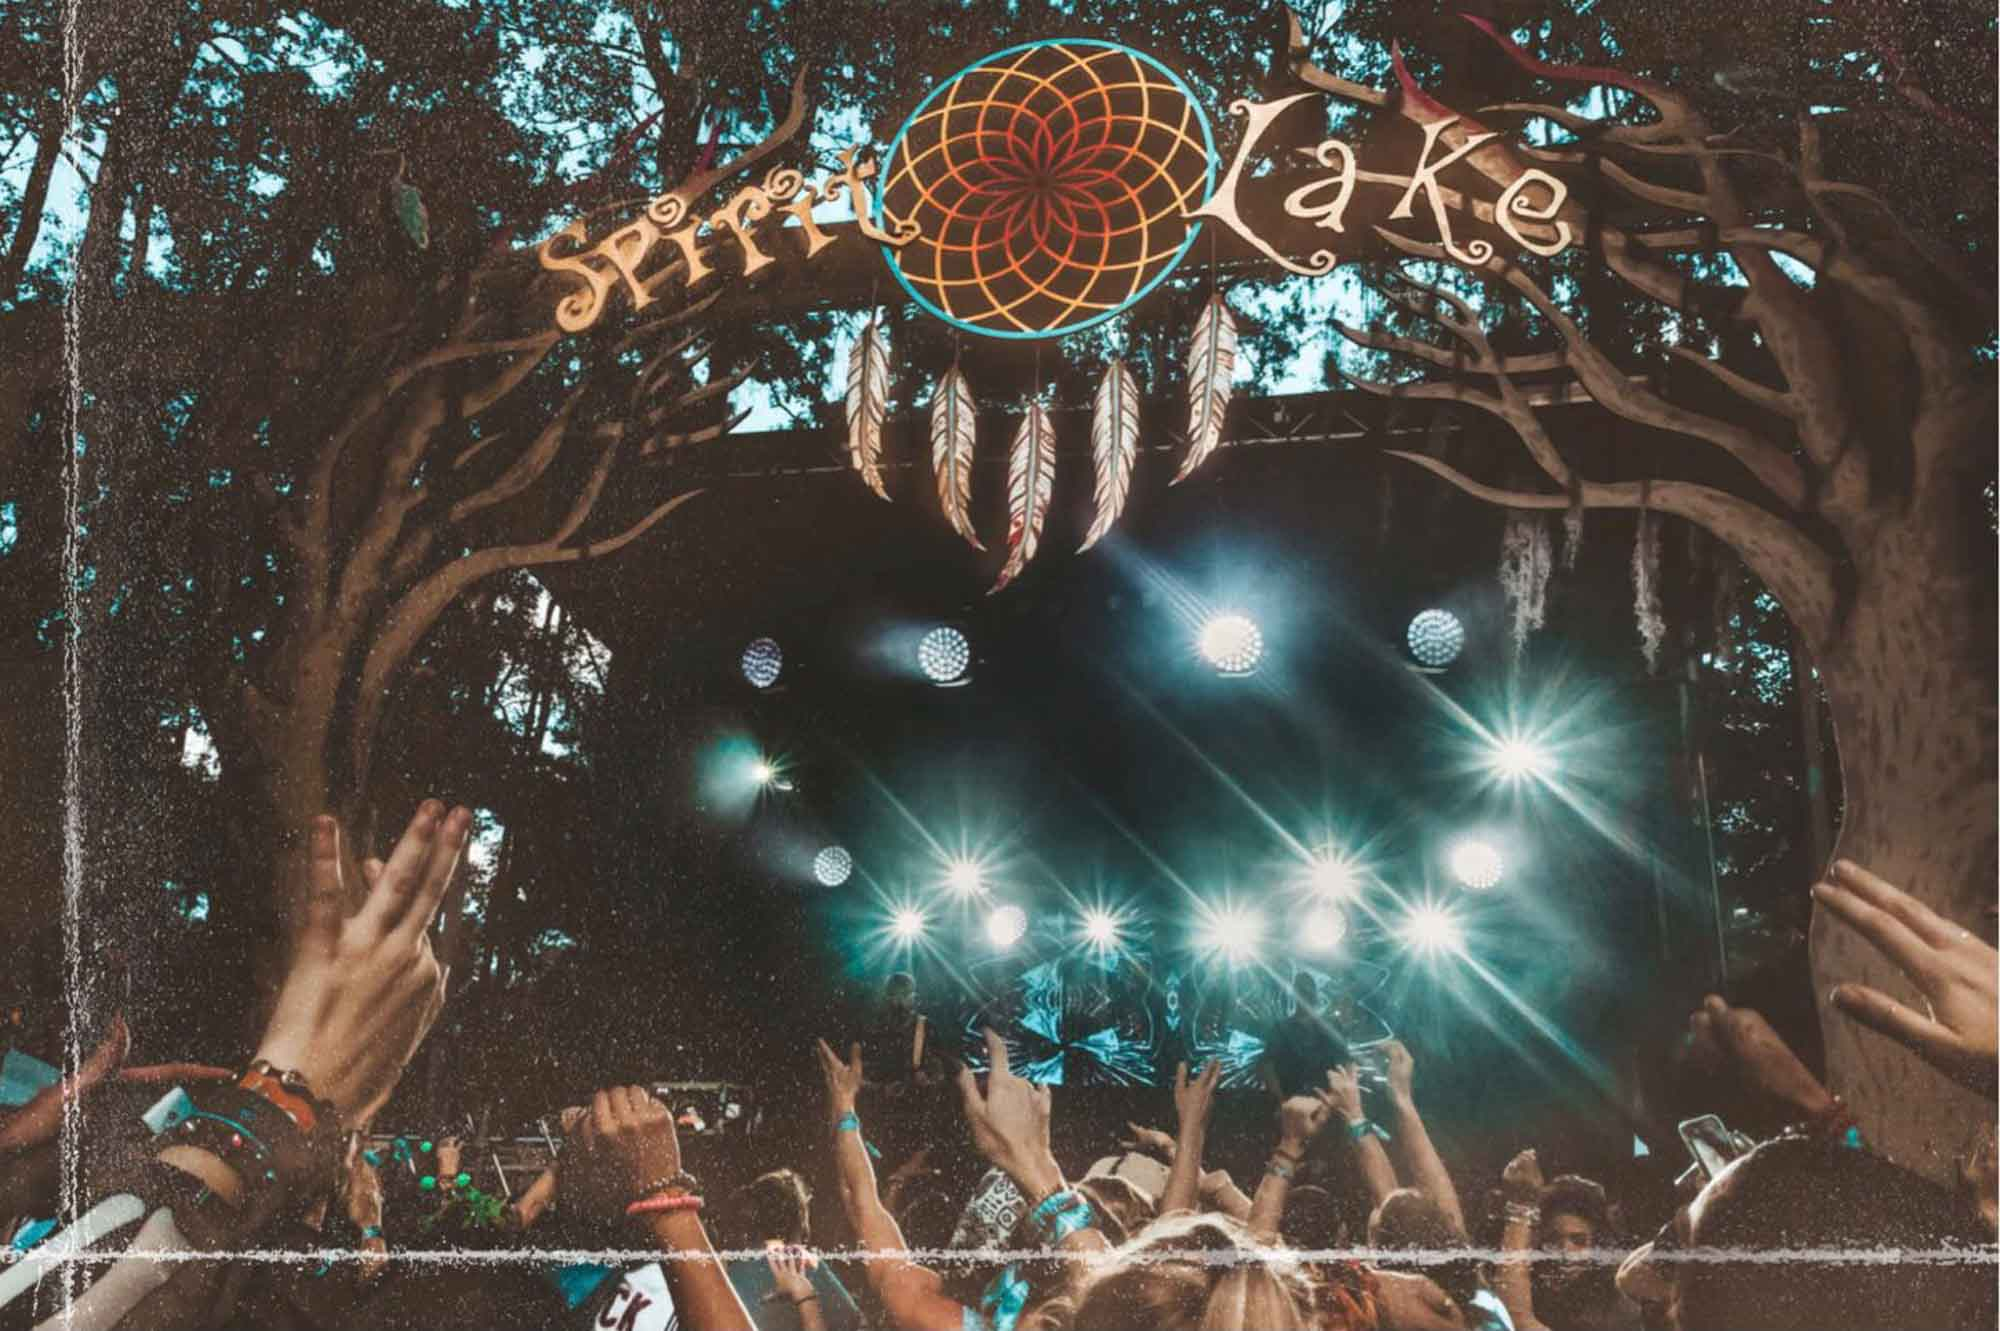 Can Real Life Be More Like Suwannee's Hulaween?